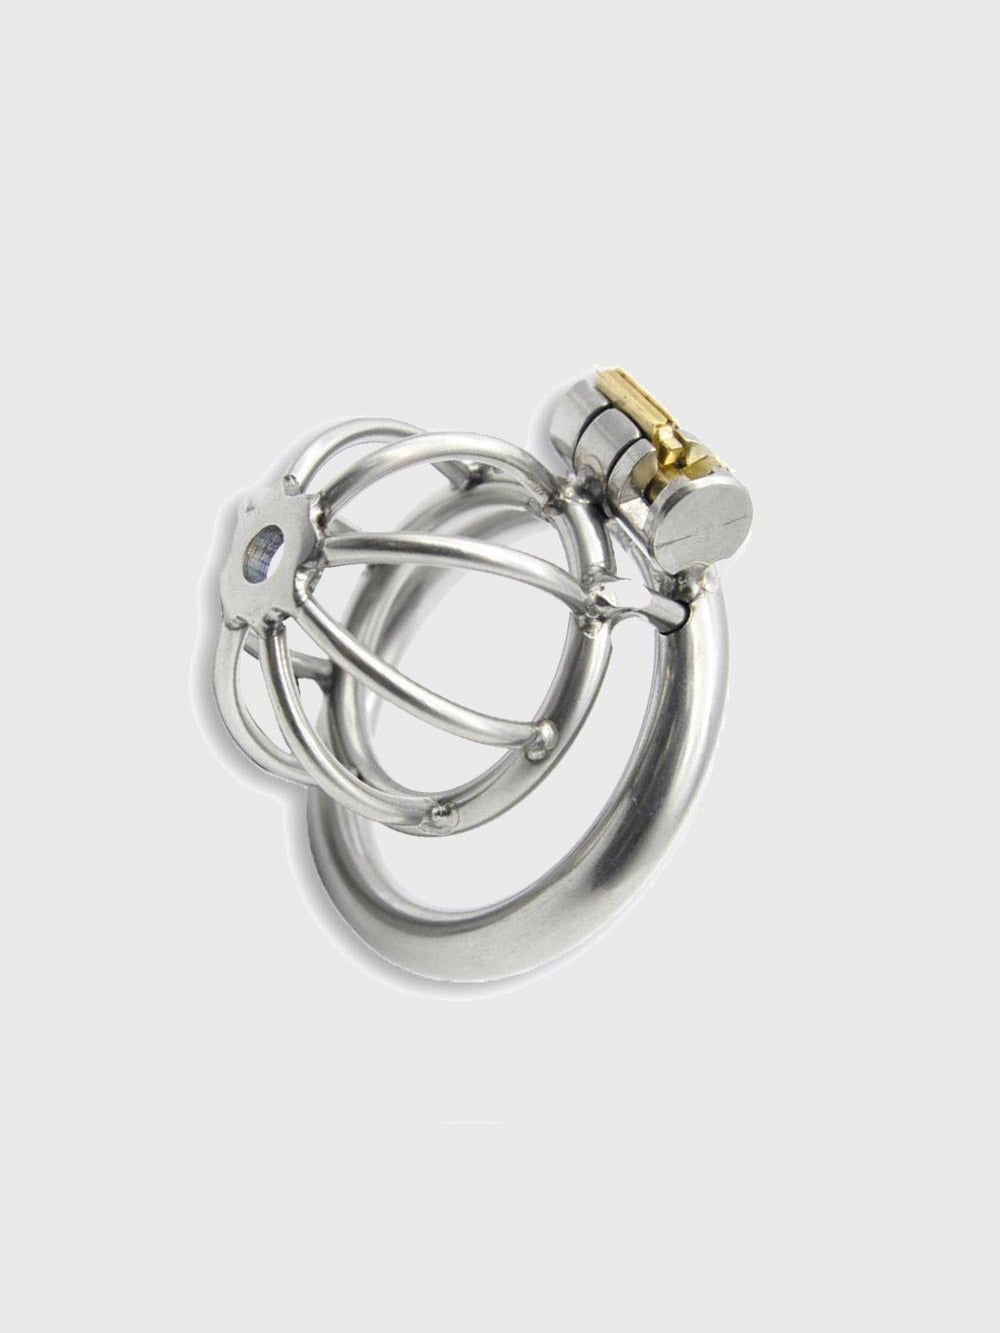 A super small chastity cage to keep your penis locked up